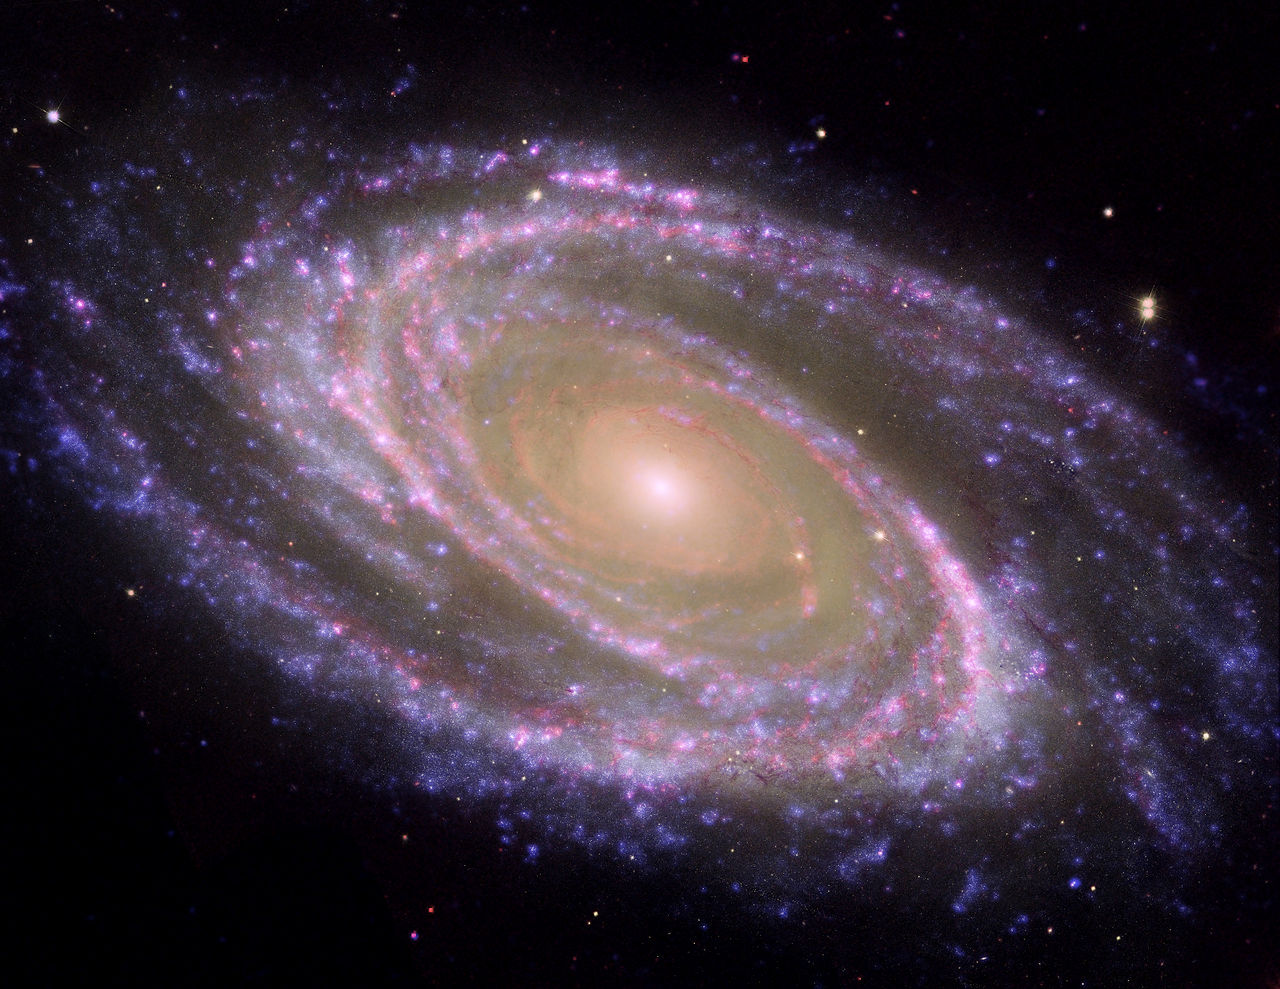 bode's galaxy,messier 81,ngc 3031